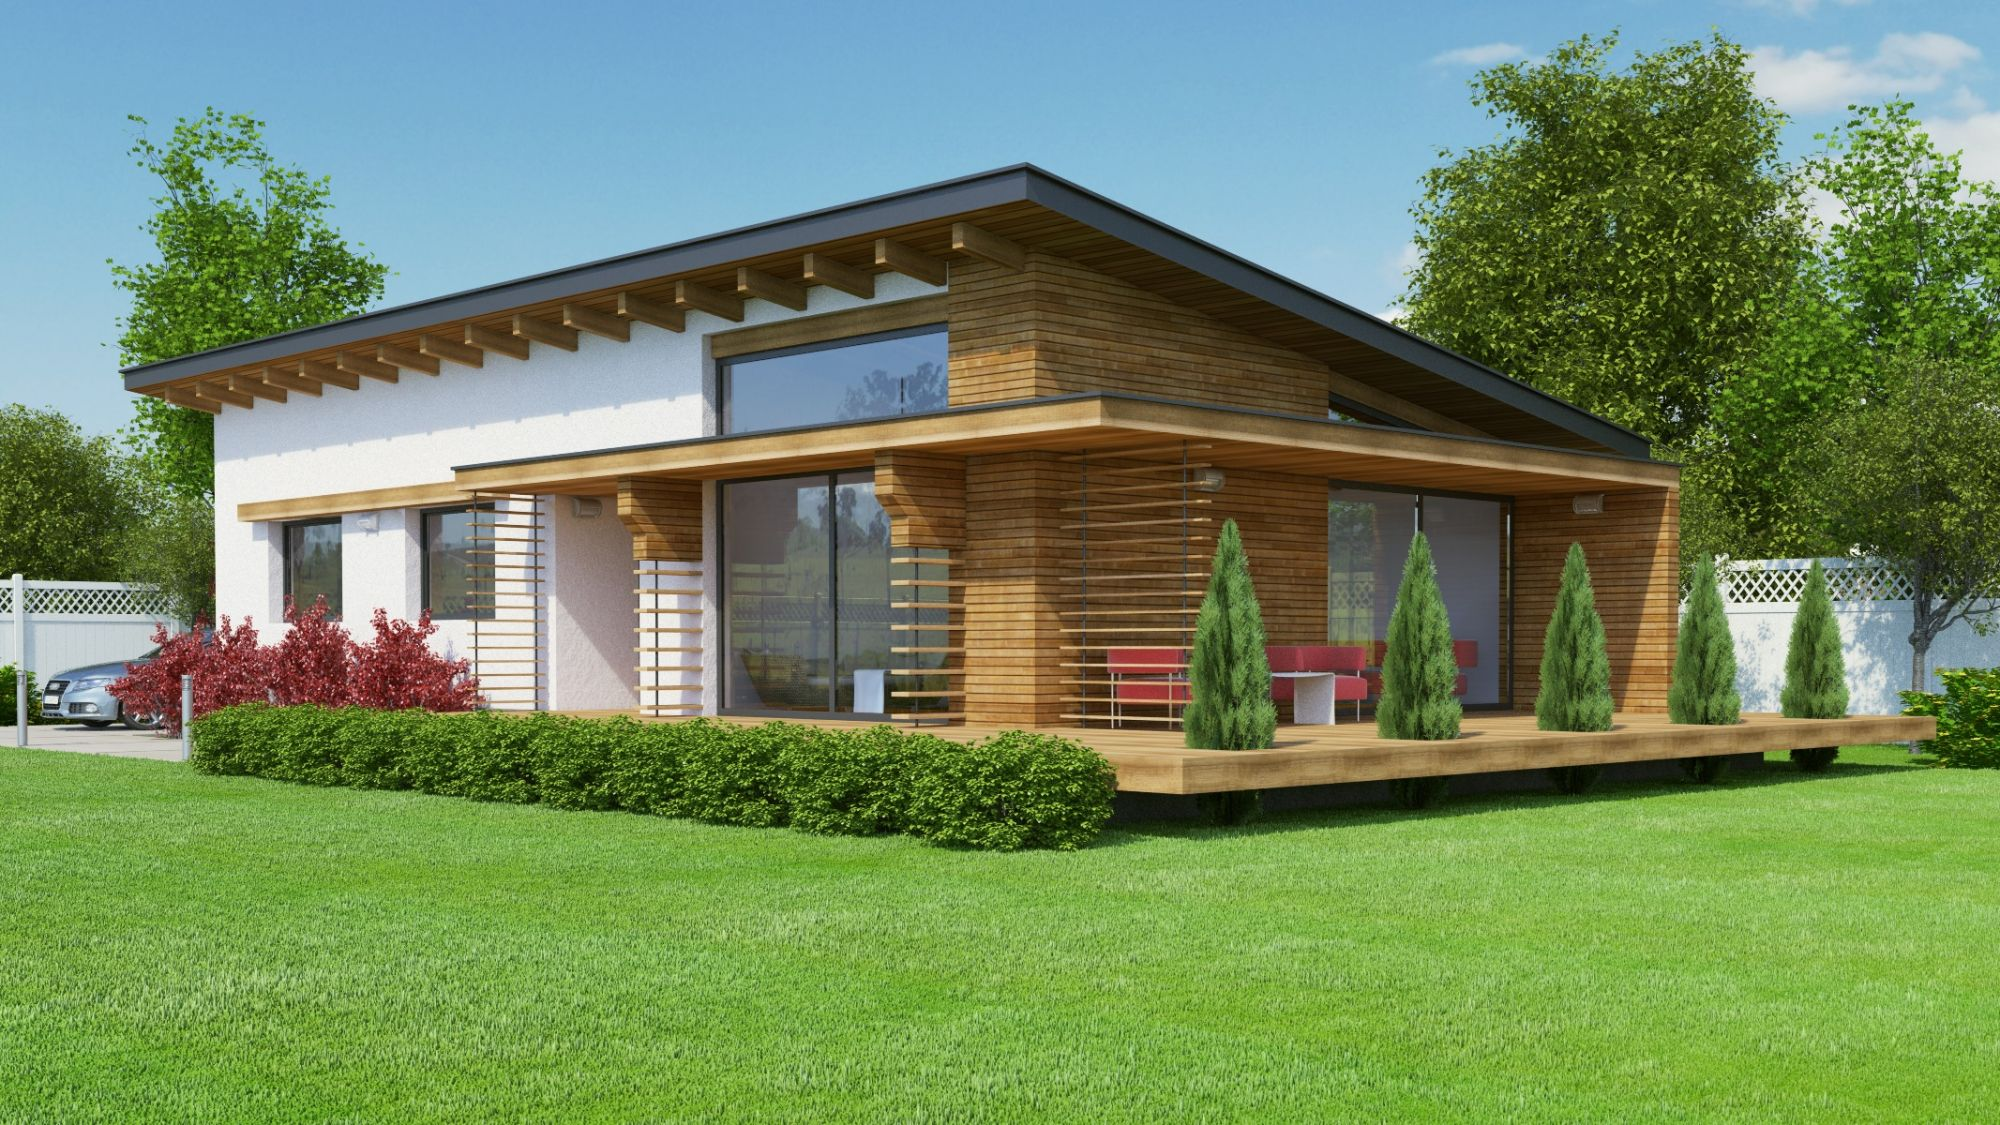 Exceptionnel Plan maison contemporaine BC-10-100m2 YS92